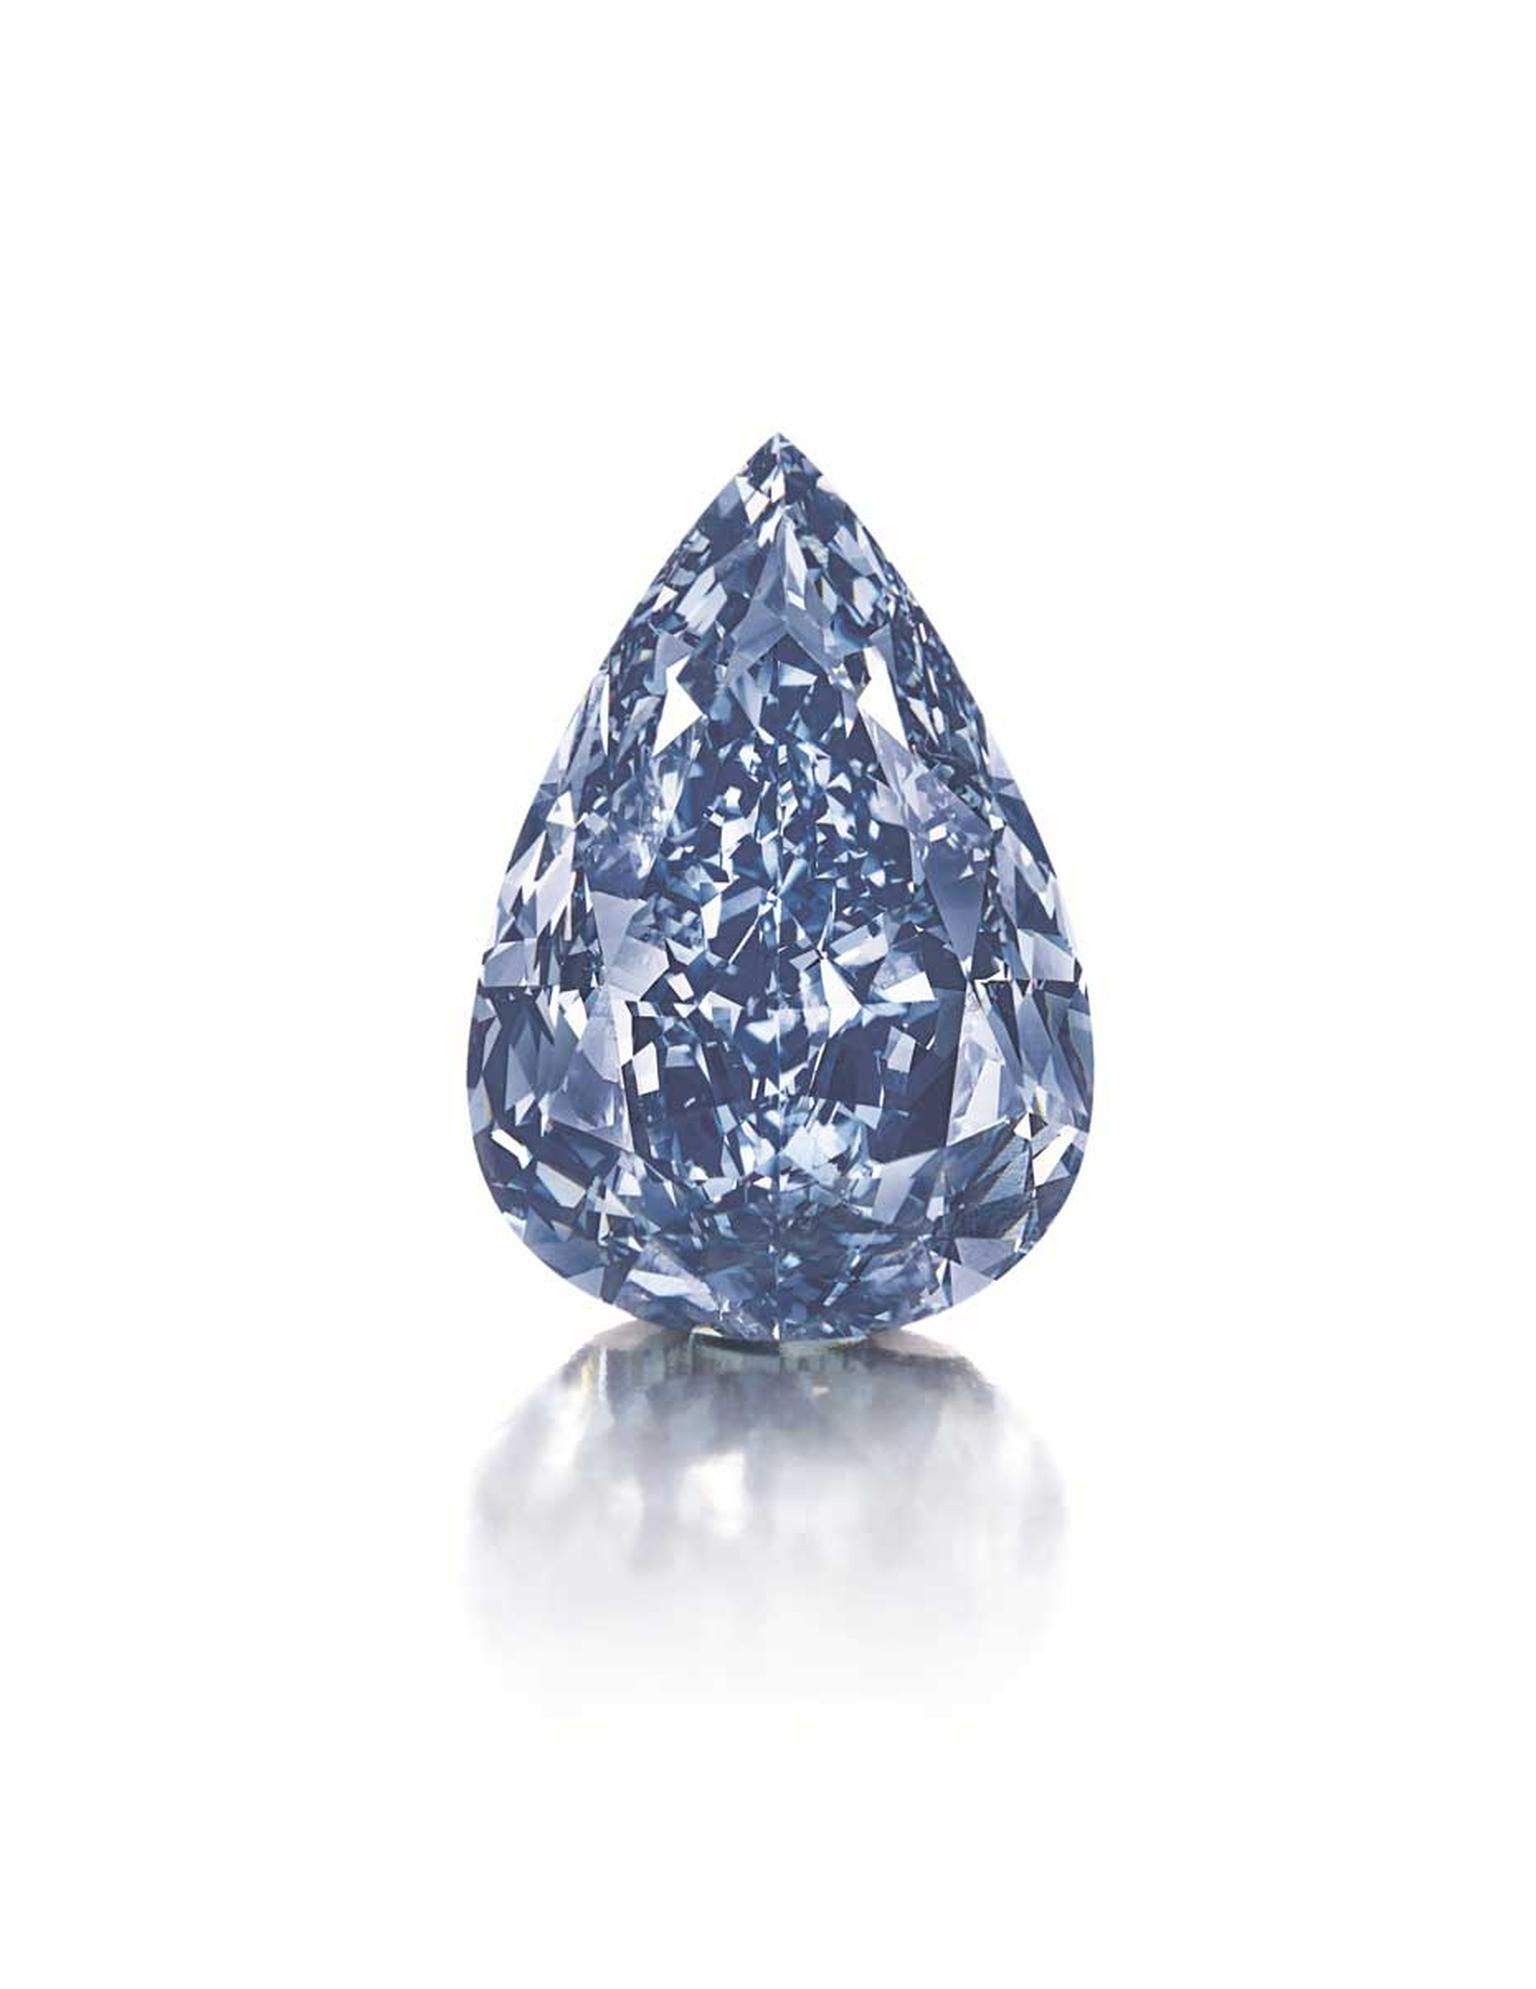 Weighing in at 13.22ct, the flawless, Fancy Vivid Winston Blue diamond fetched a staggering $1.79m per carat.